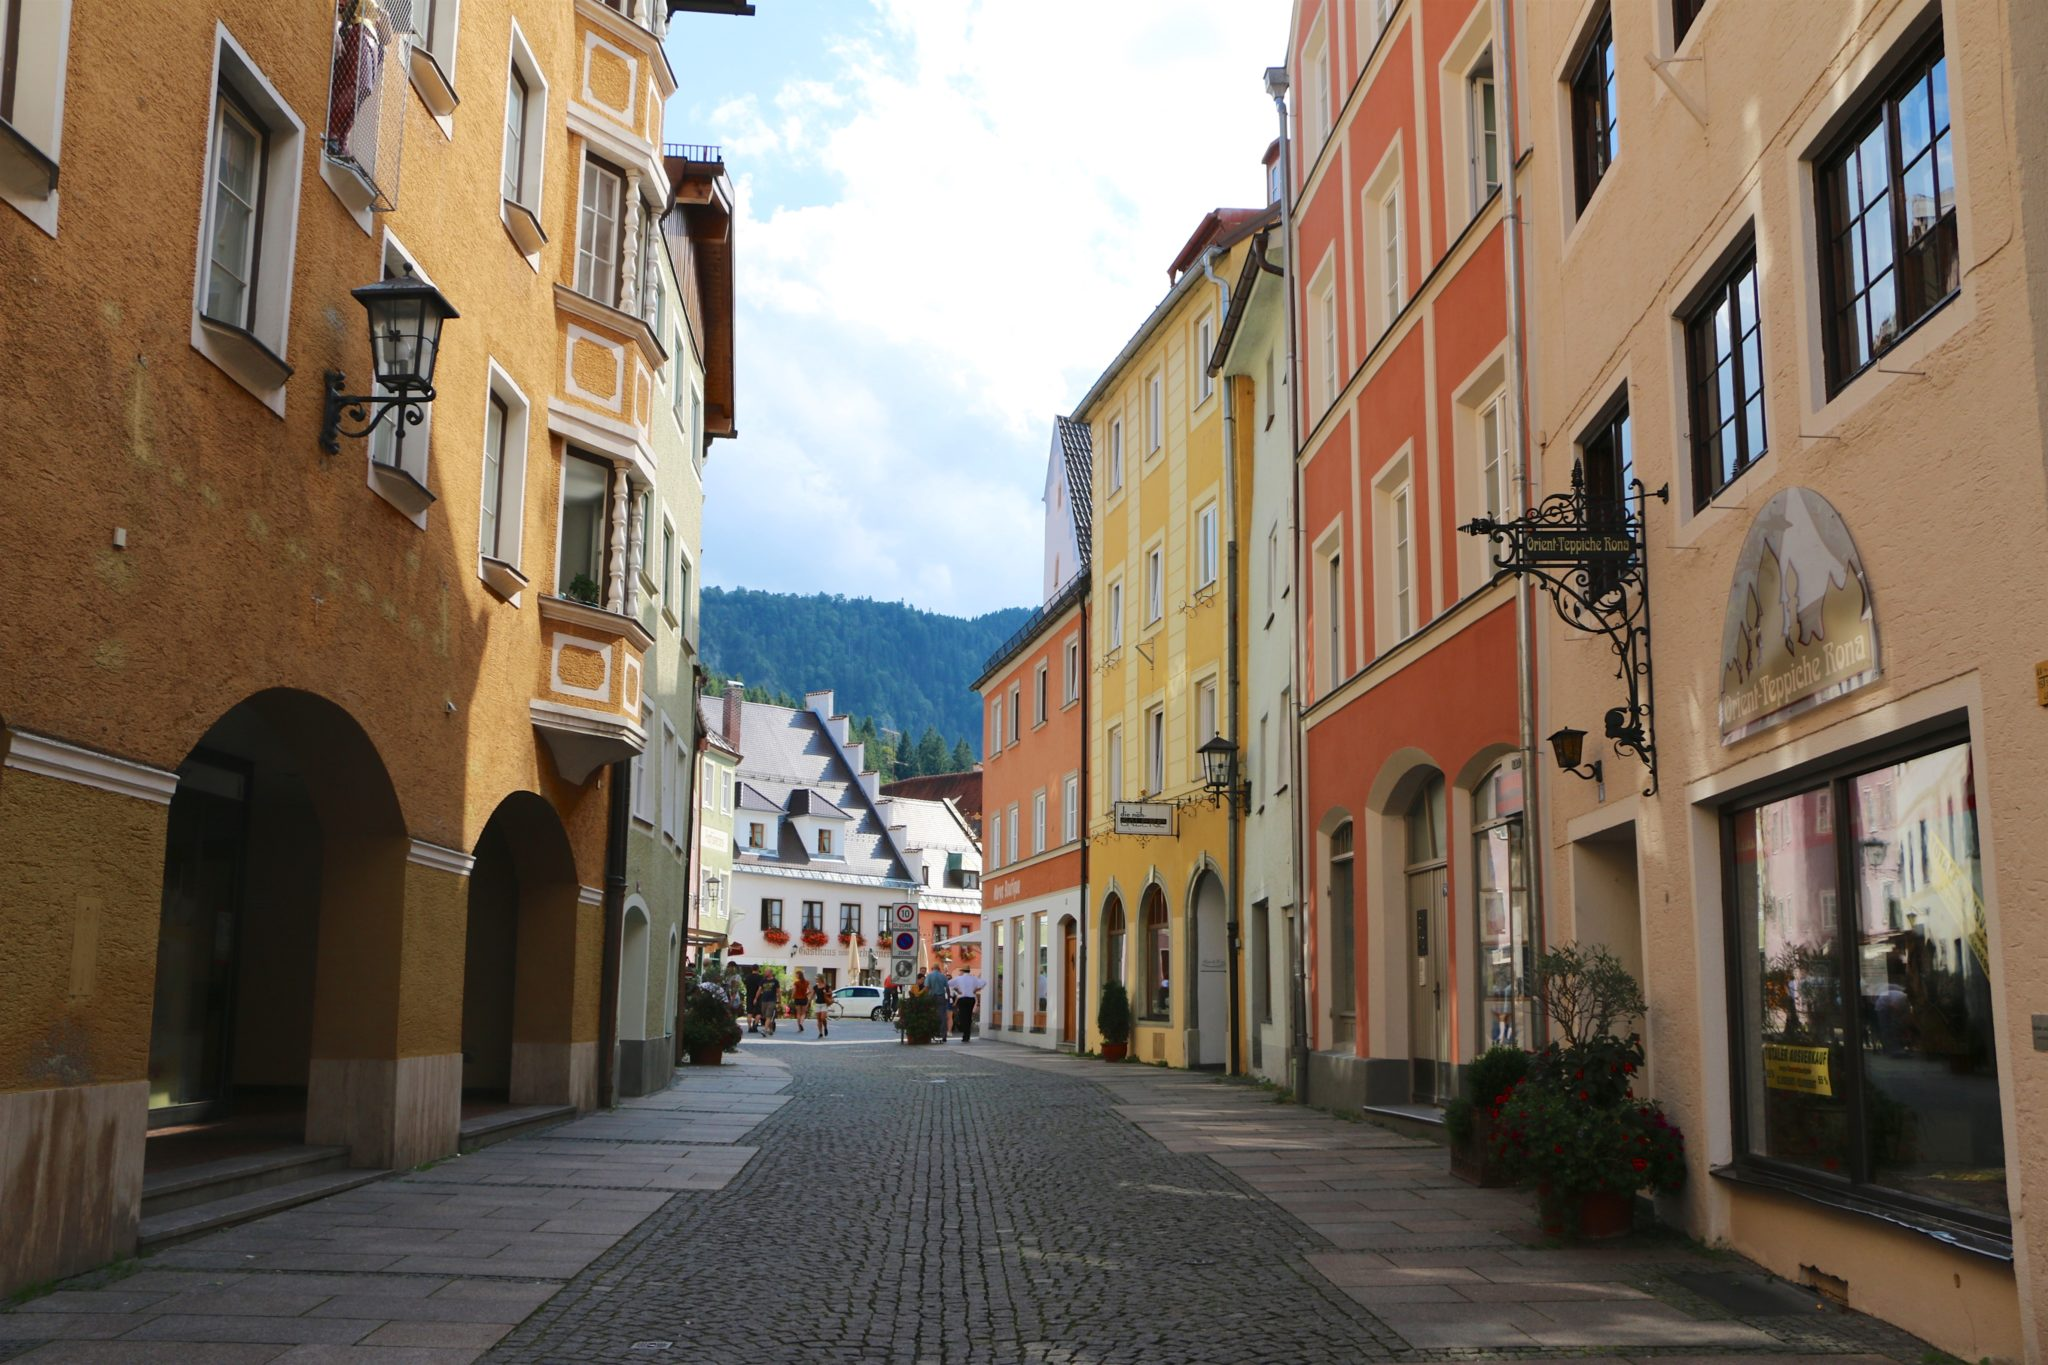 Teppich Franz Augsburg End Of The Romantic Road Füssen Germany Traveling With Jc